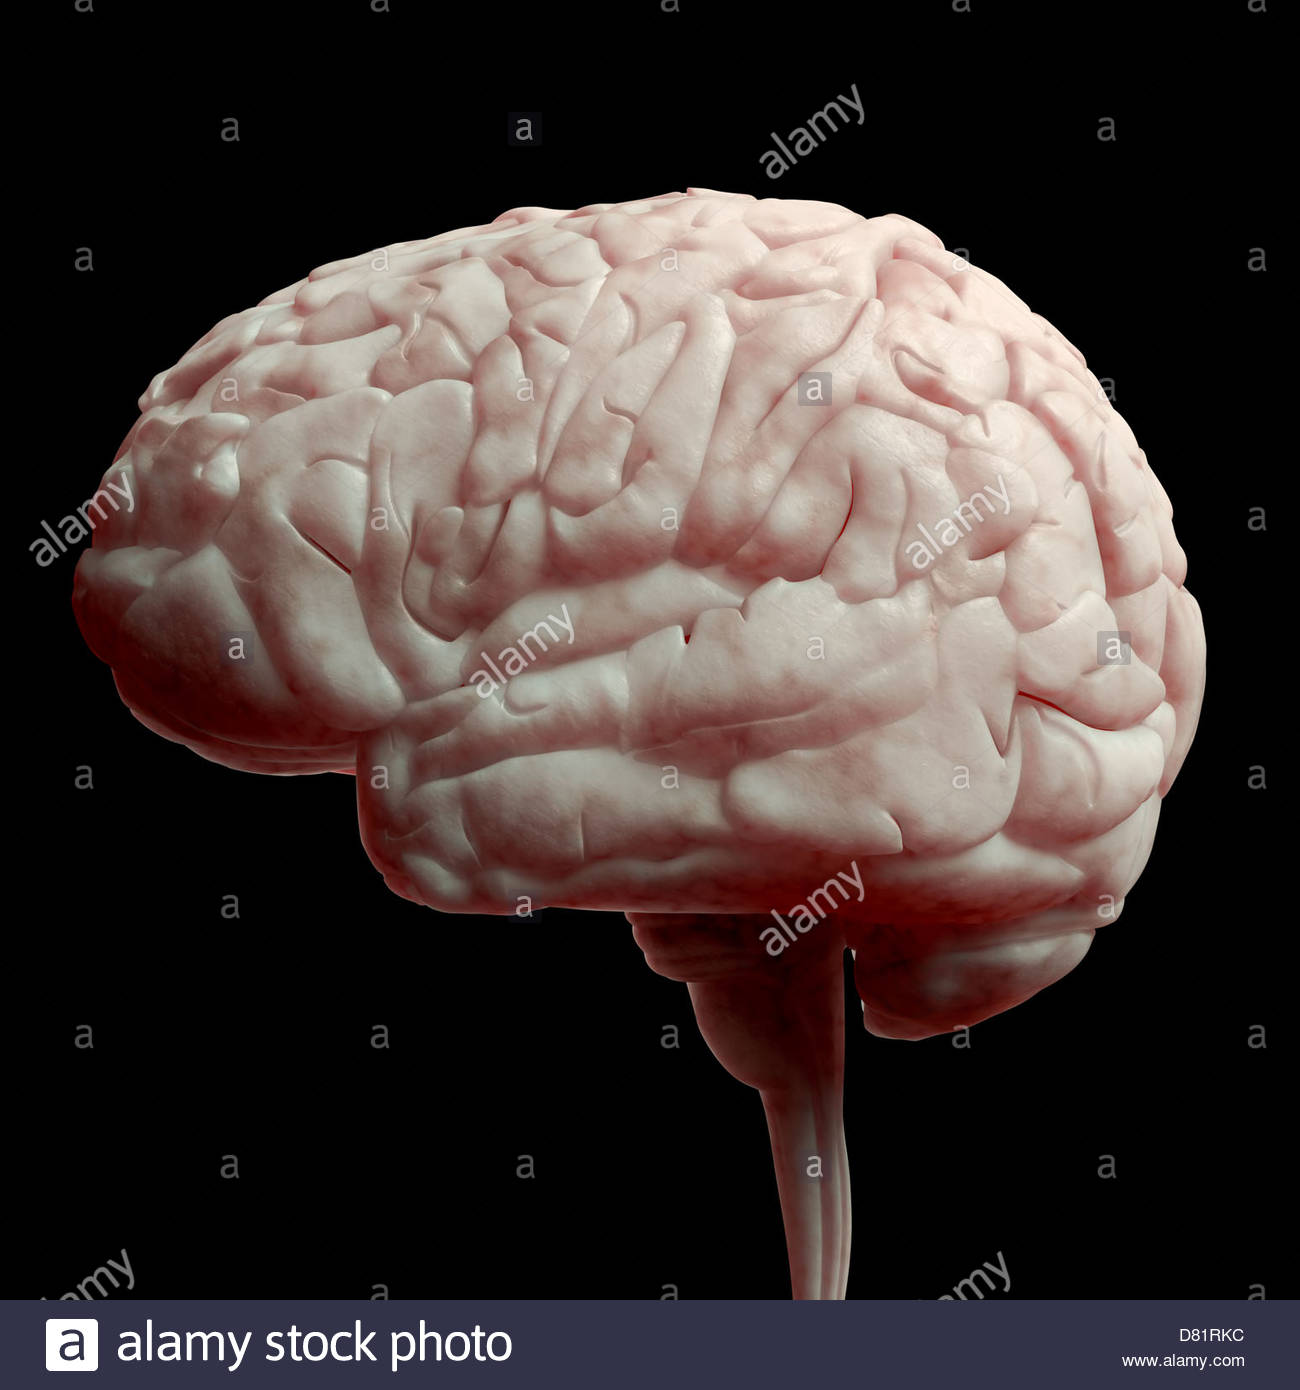 Digital medical illustration: Lateral (side) view of human brain. - Stock Image